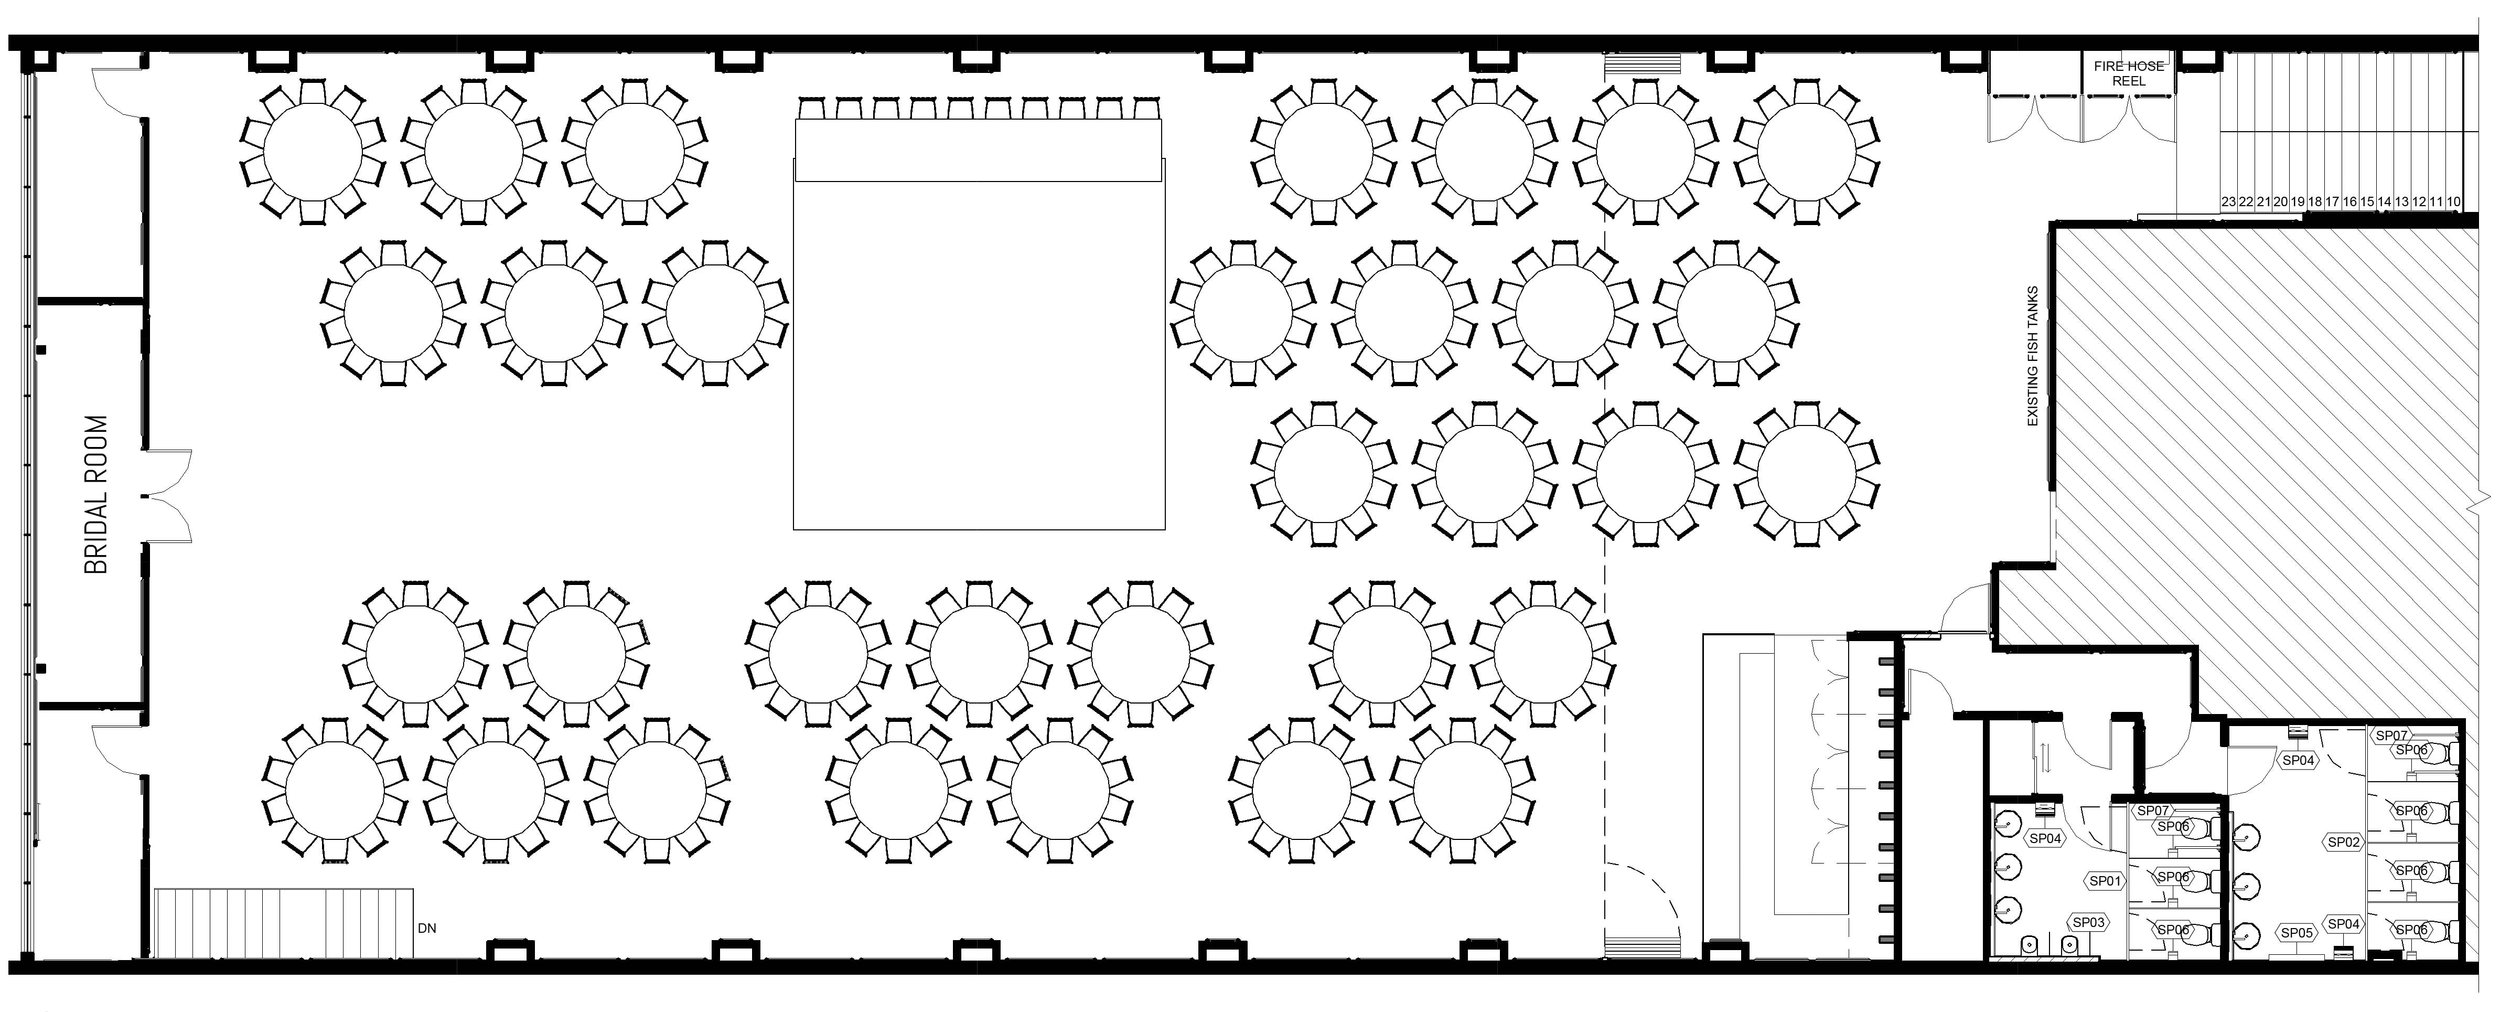 Standard floorplan for 320pax (32 tables)